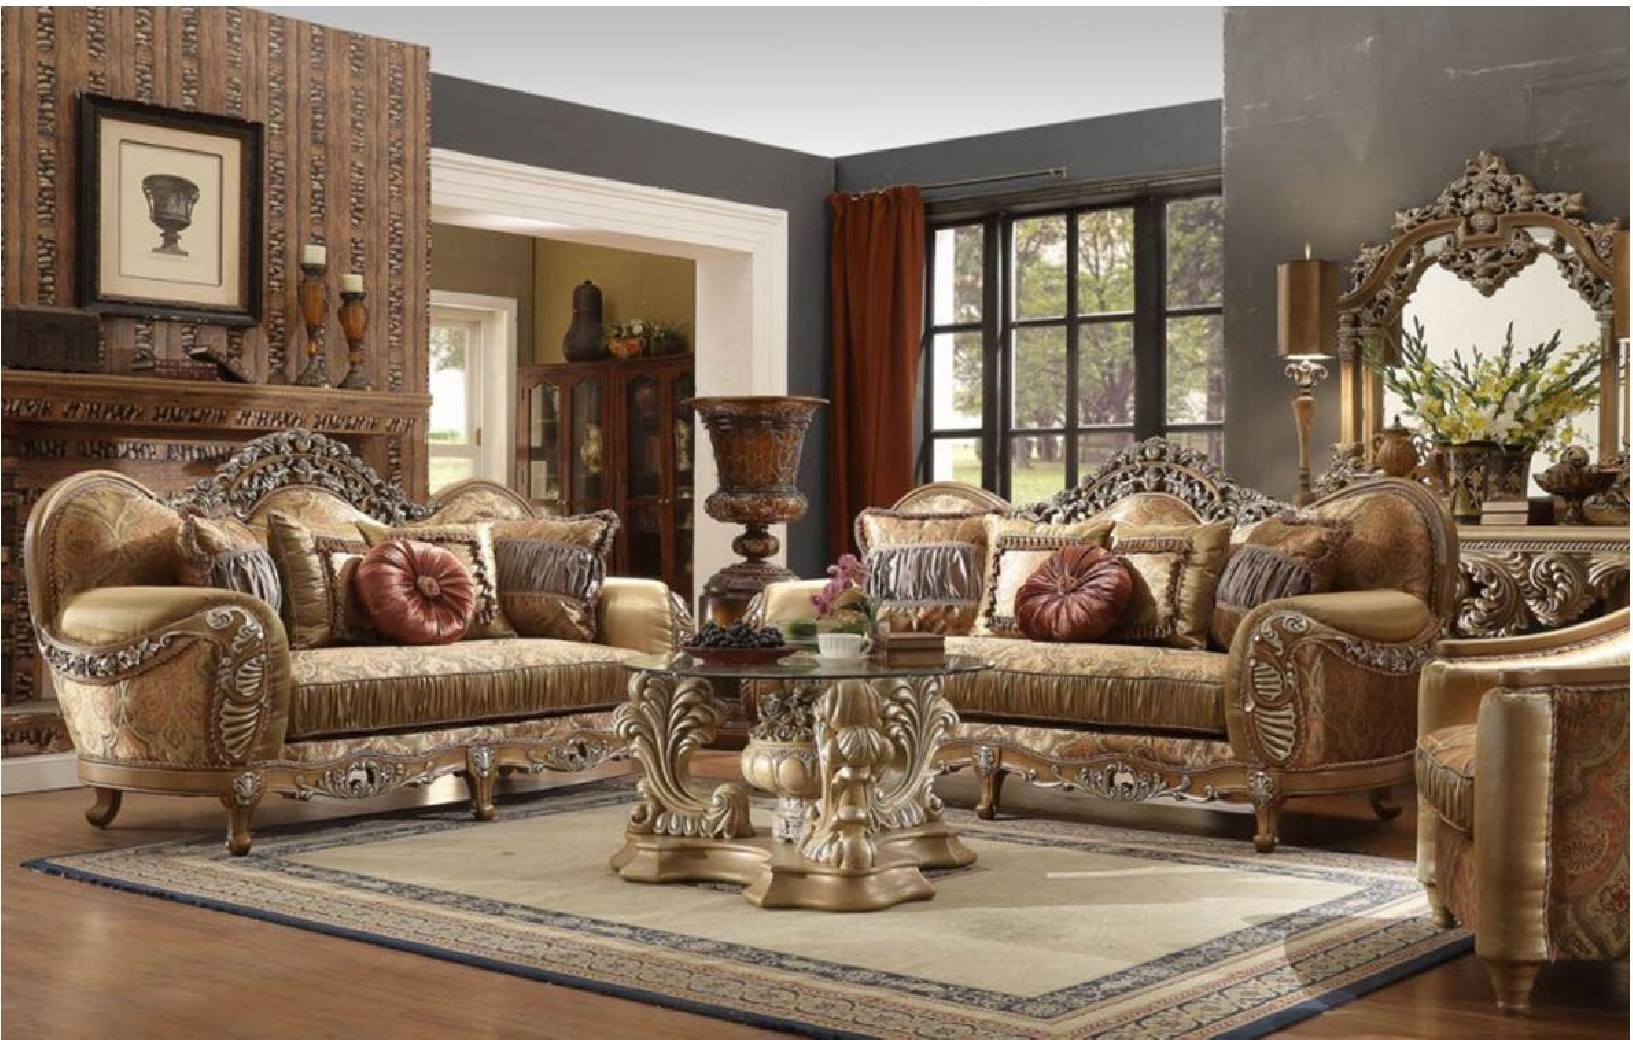 hd 622 homey design upholstery living room set victorian. Black Bedroom Furniture Sets. Home Design Ideas